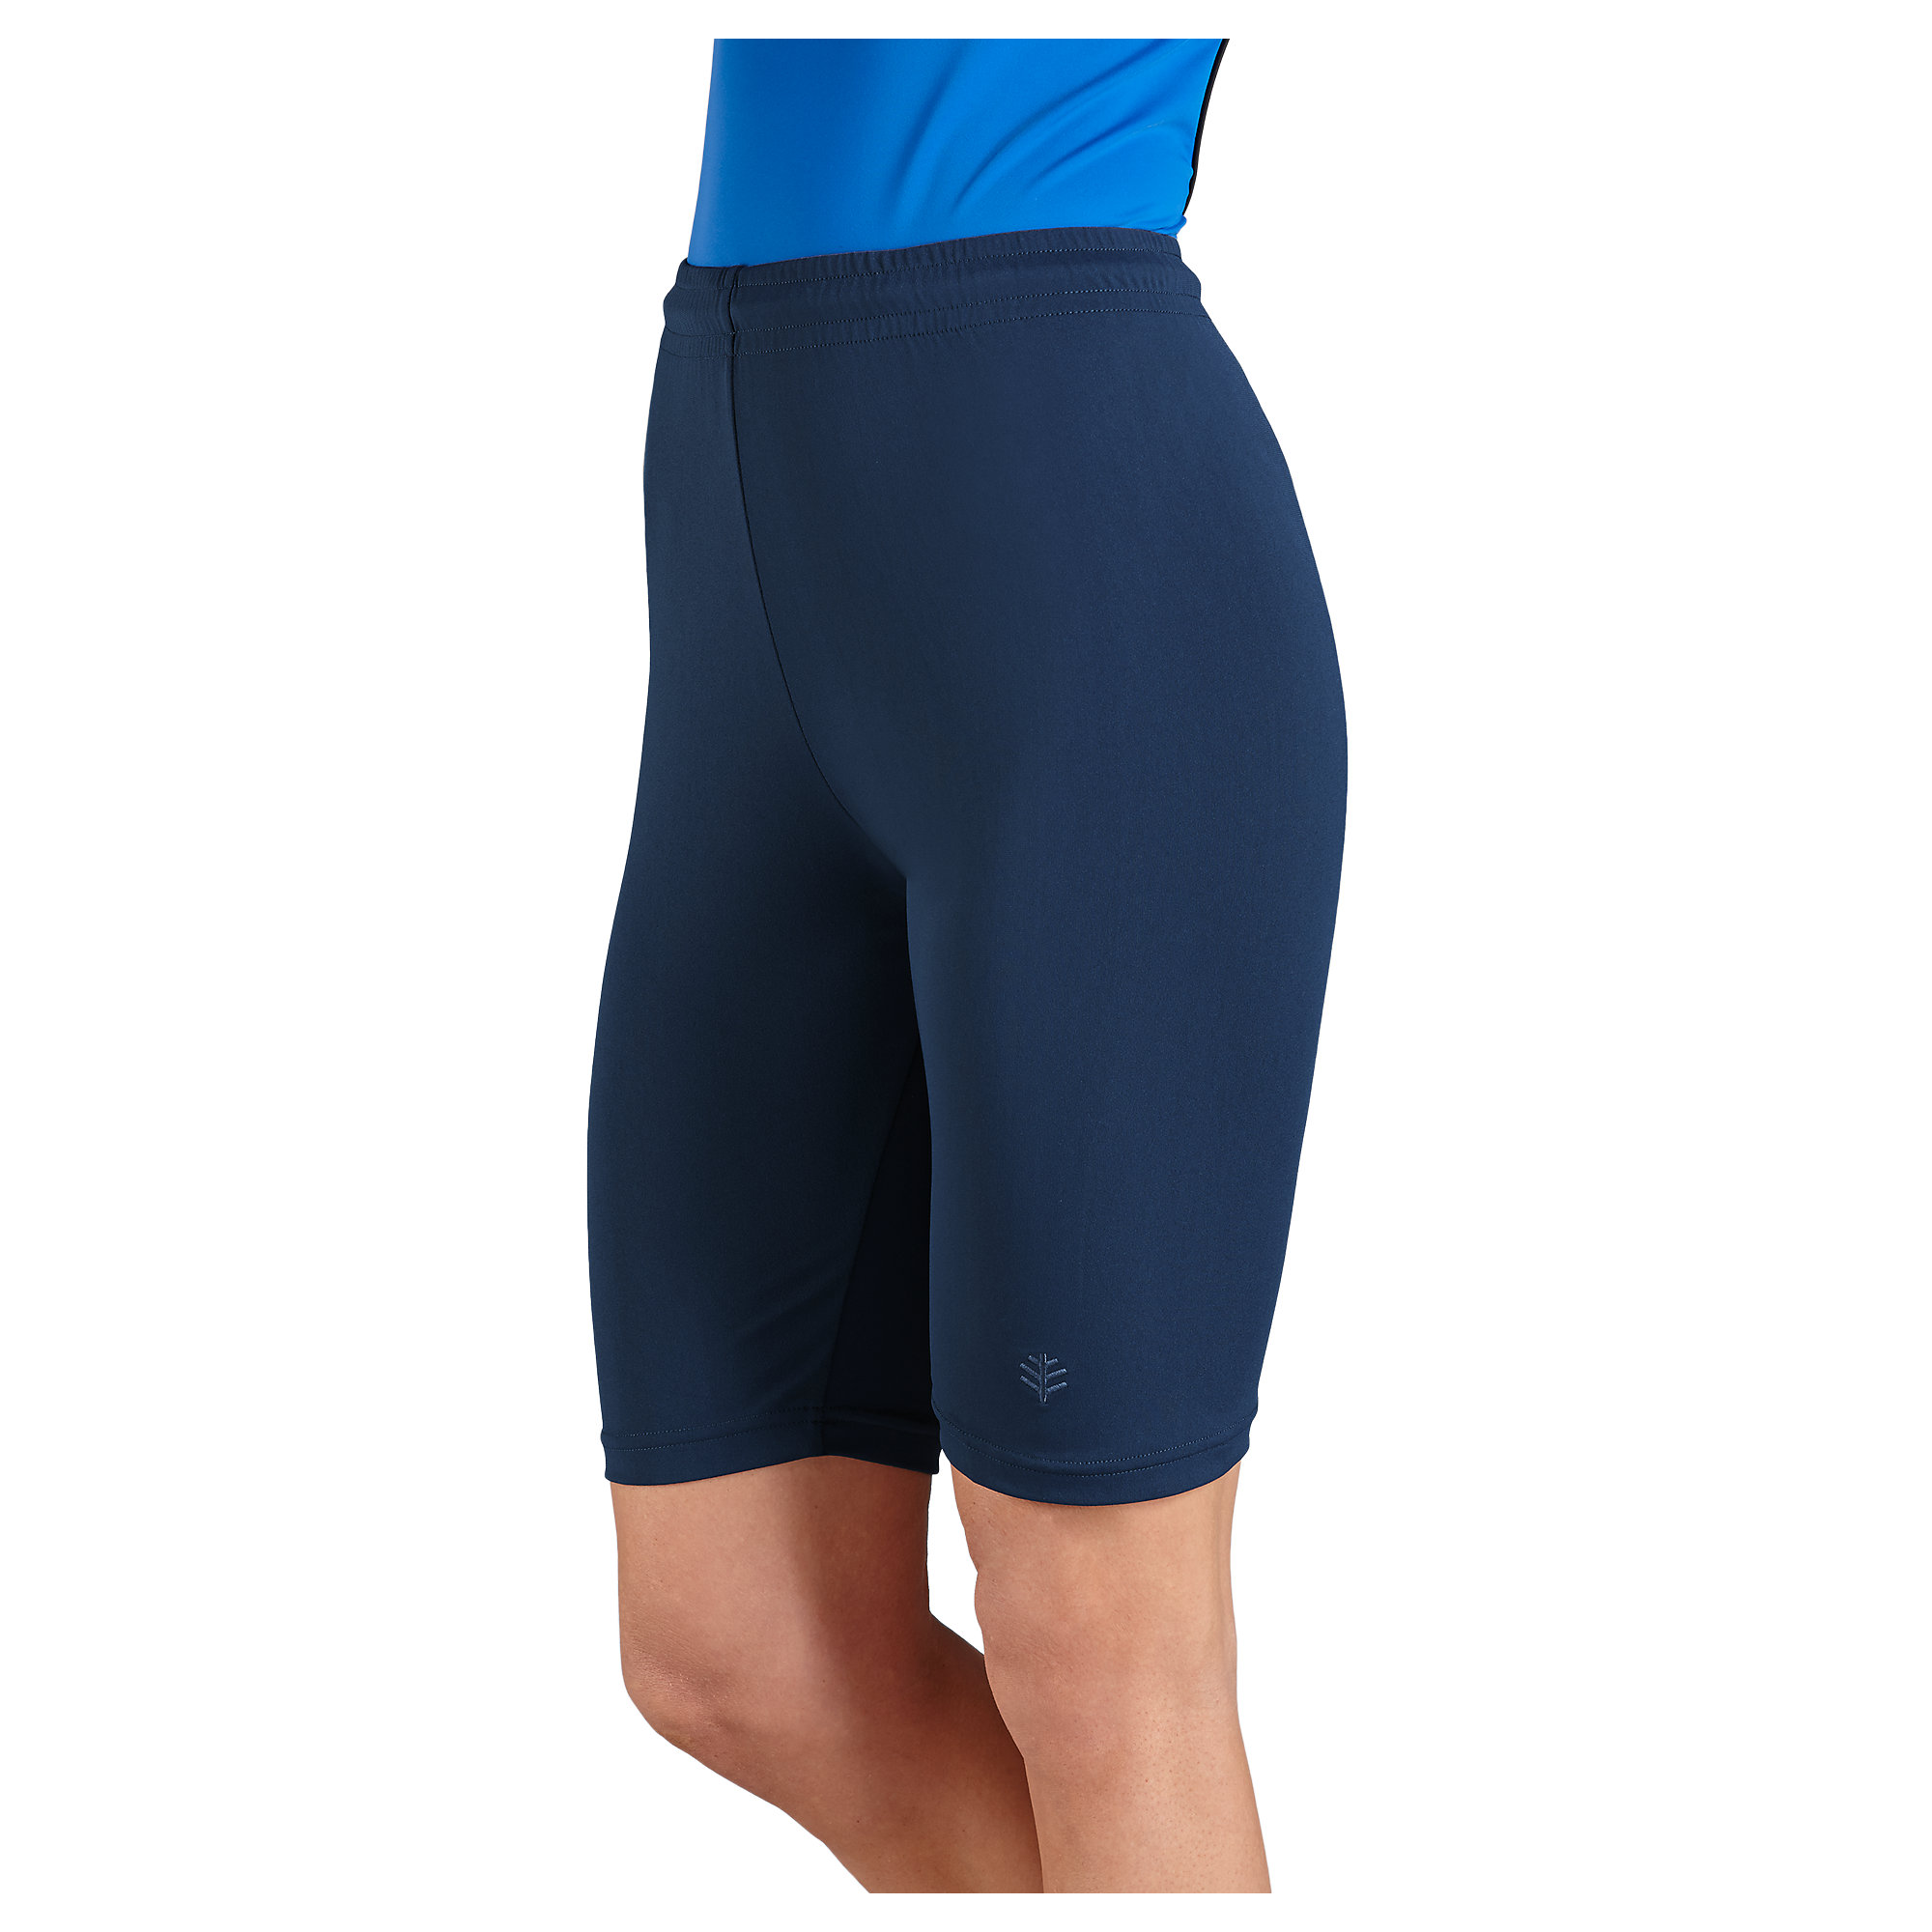 Elegant Look Out For Some Alternatives Including The Increasingly Popular Hybrid Shorts Featuring A Walk Short Style In The  SEE ALSO  Top 10 Best Womens Water